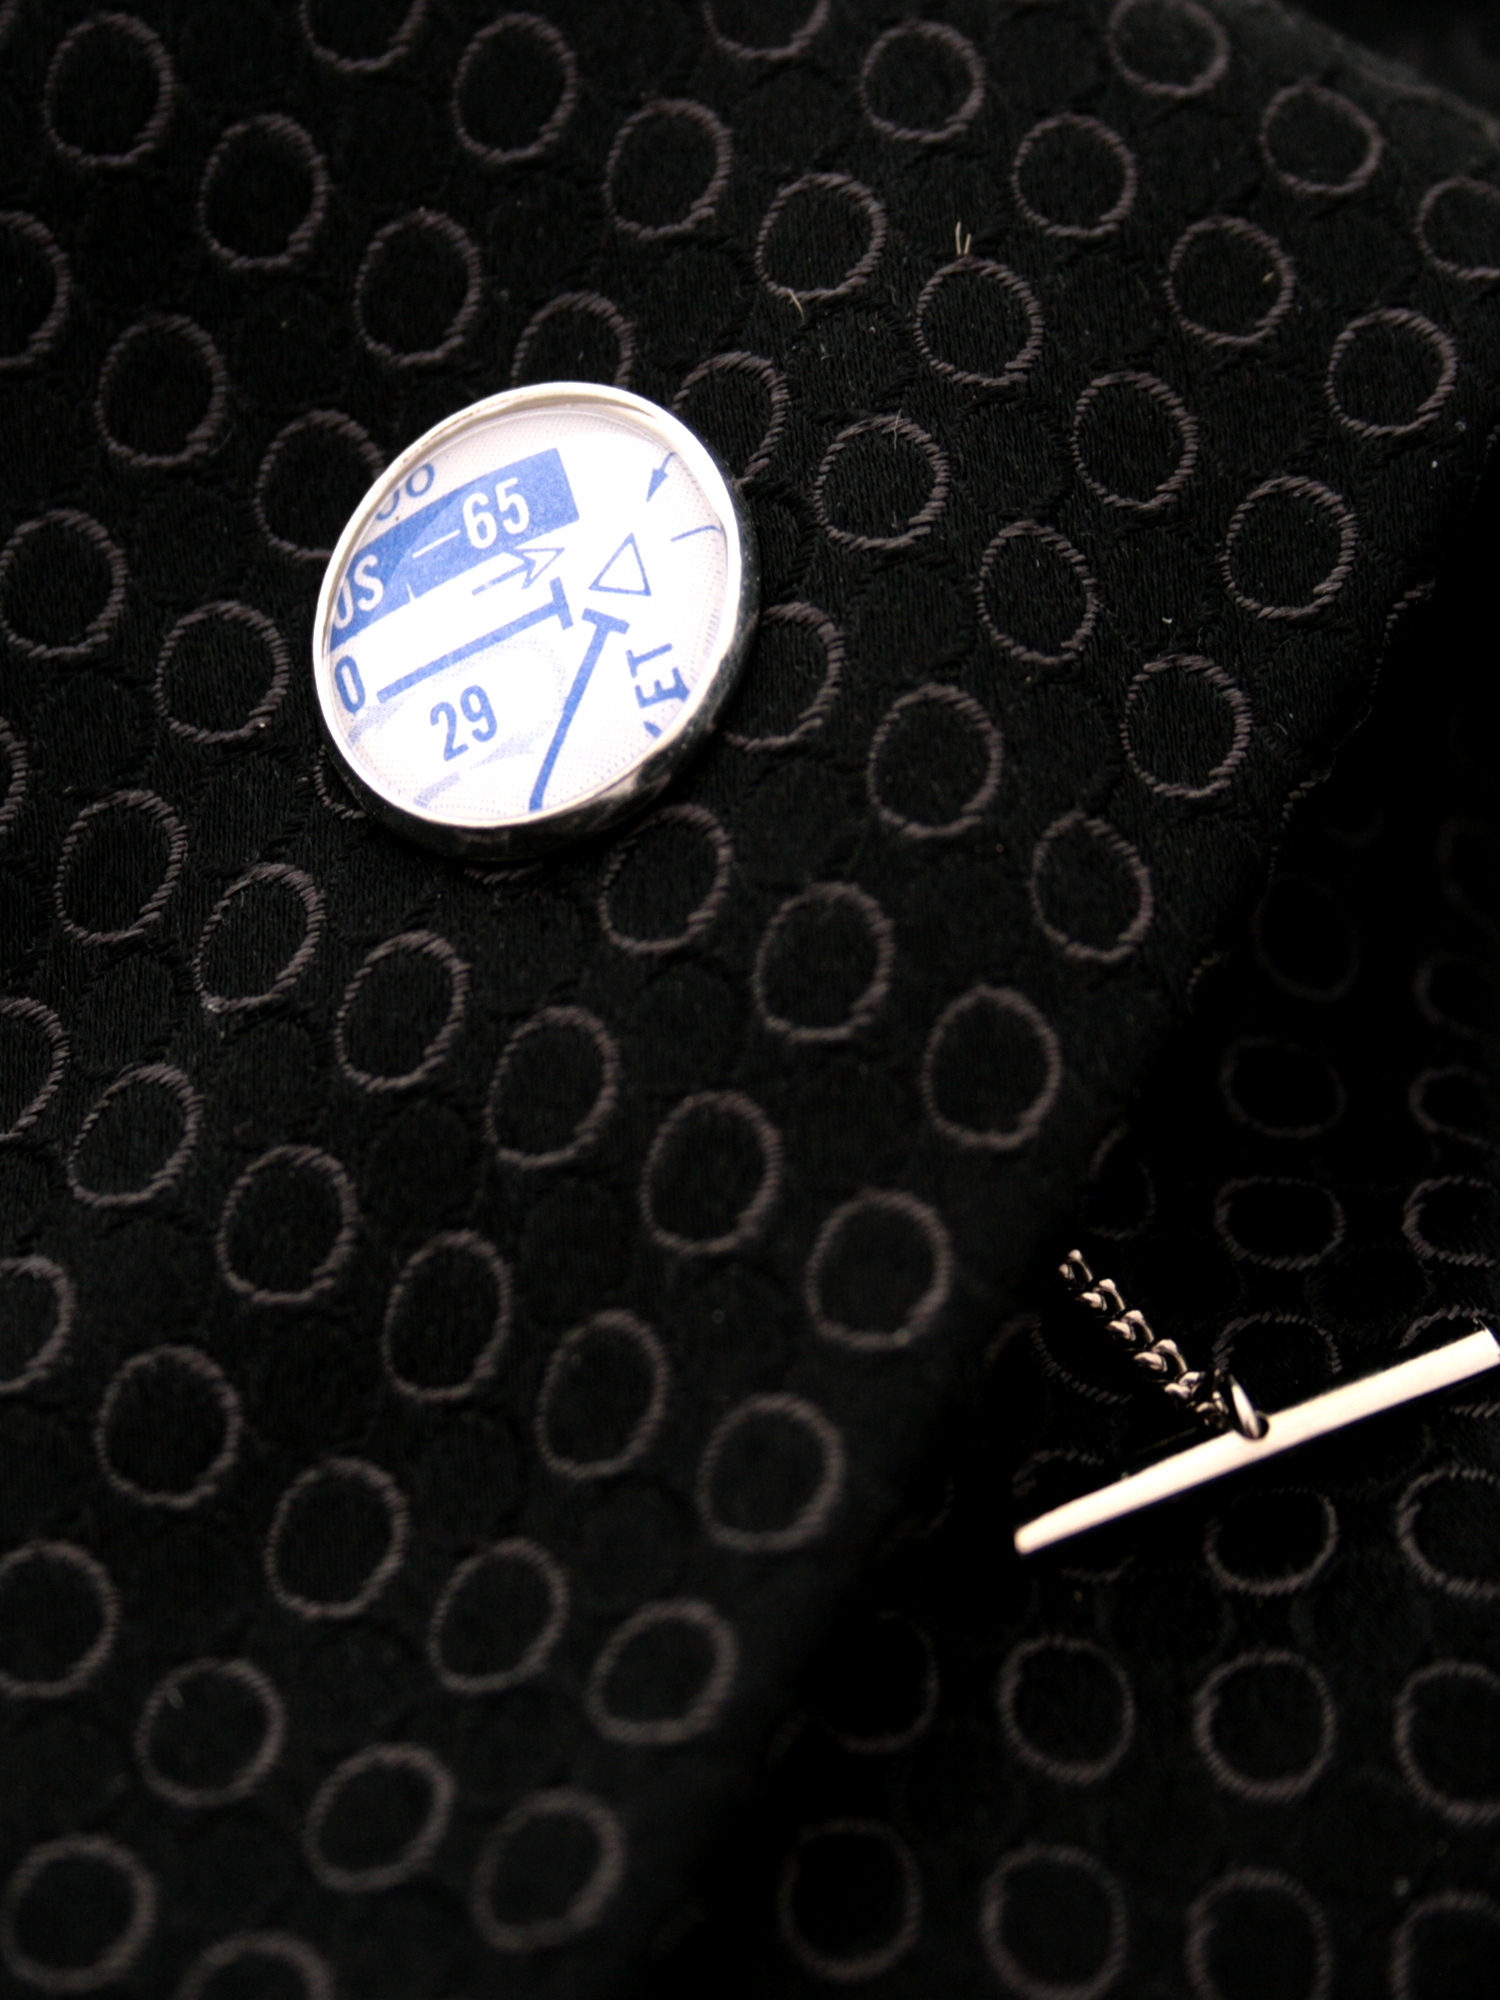 tie tack for a pilot made with real aviation charts of high altitude